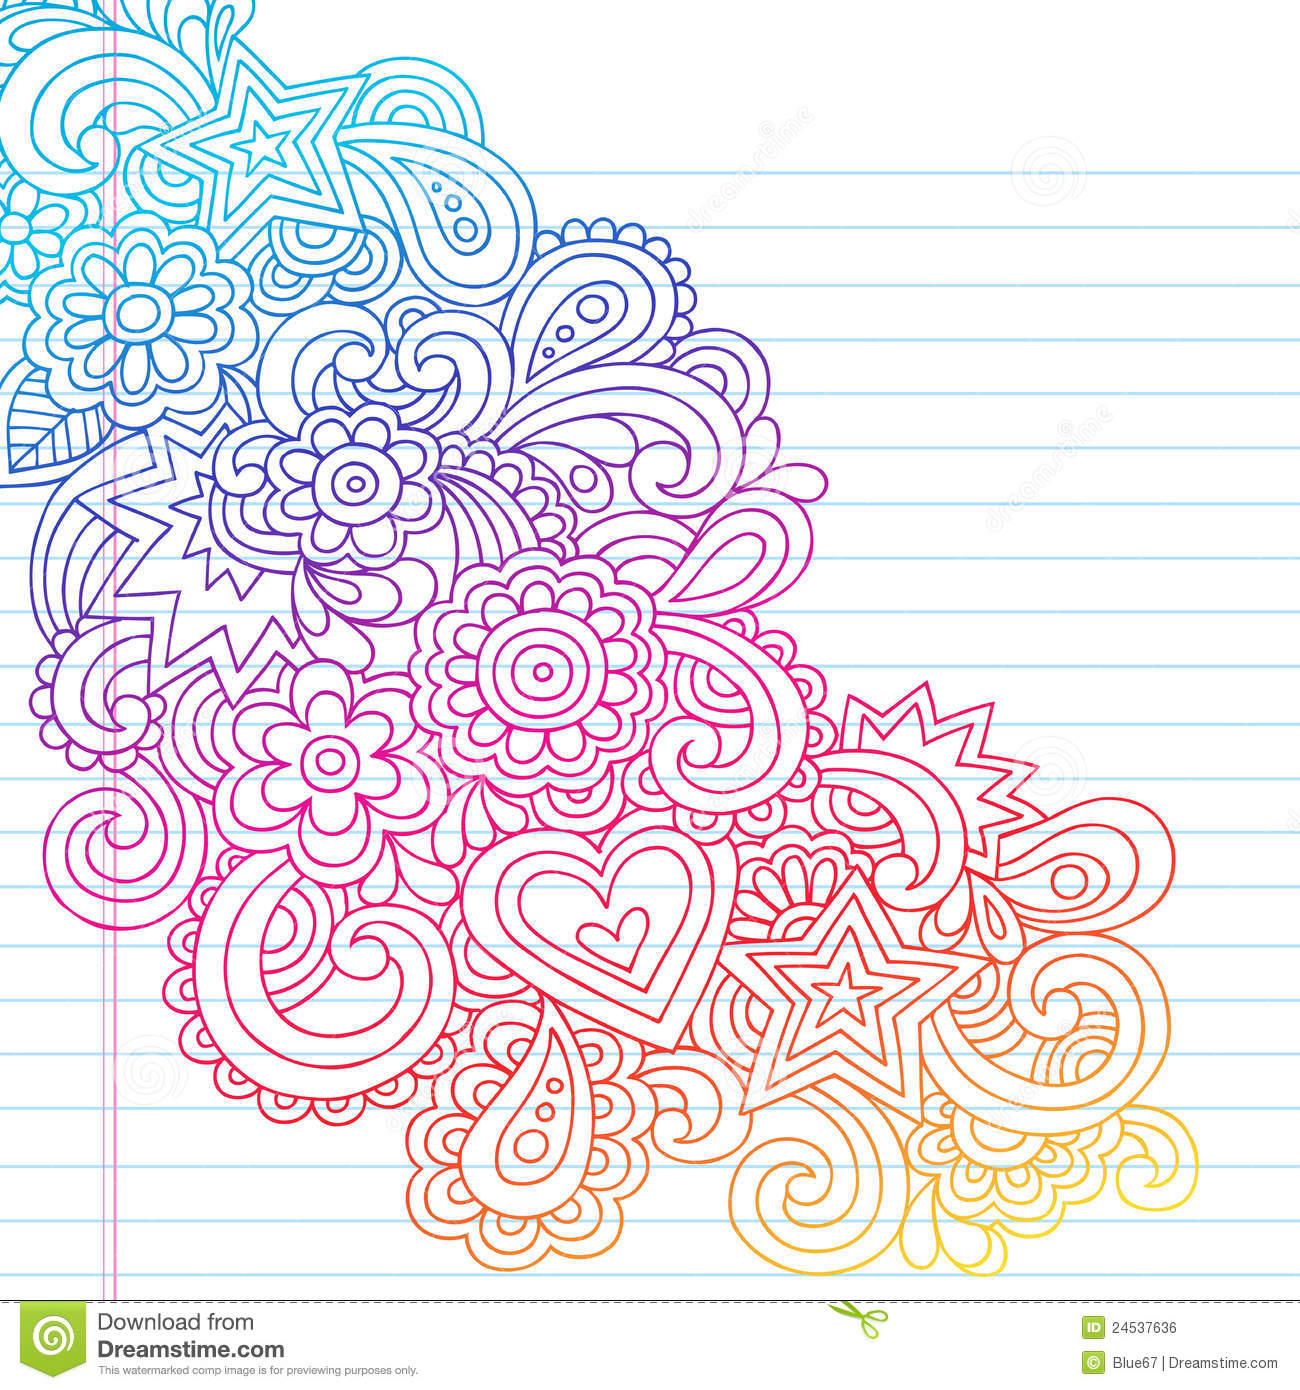 Cover page designs for school projects note book cover page design - Abstract Psychedelic Notebook Doodles Royalty Free Stock Image Image